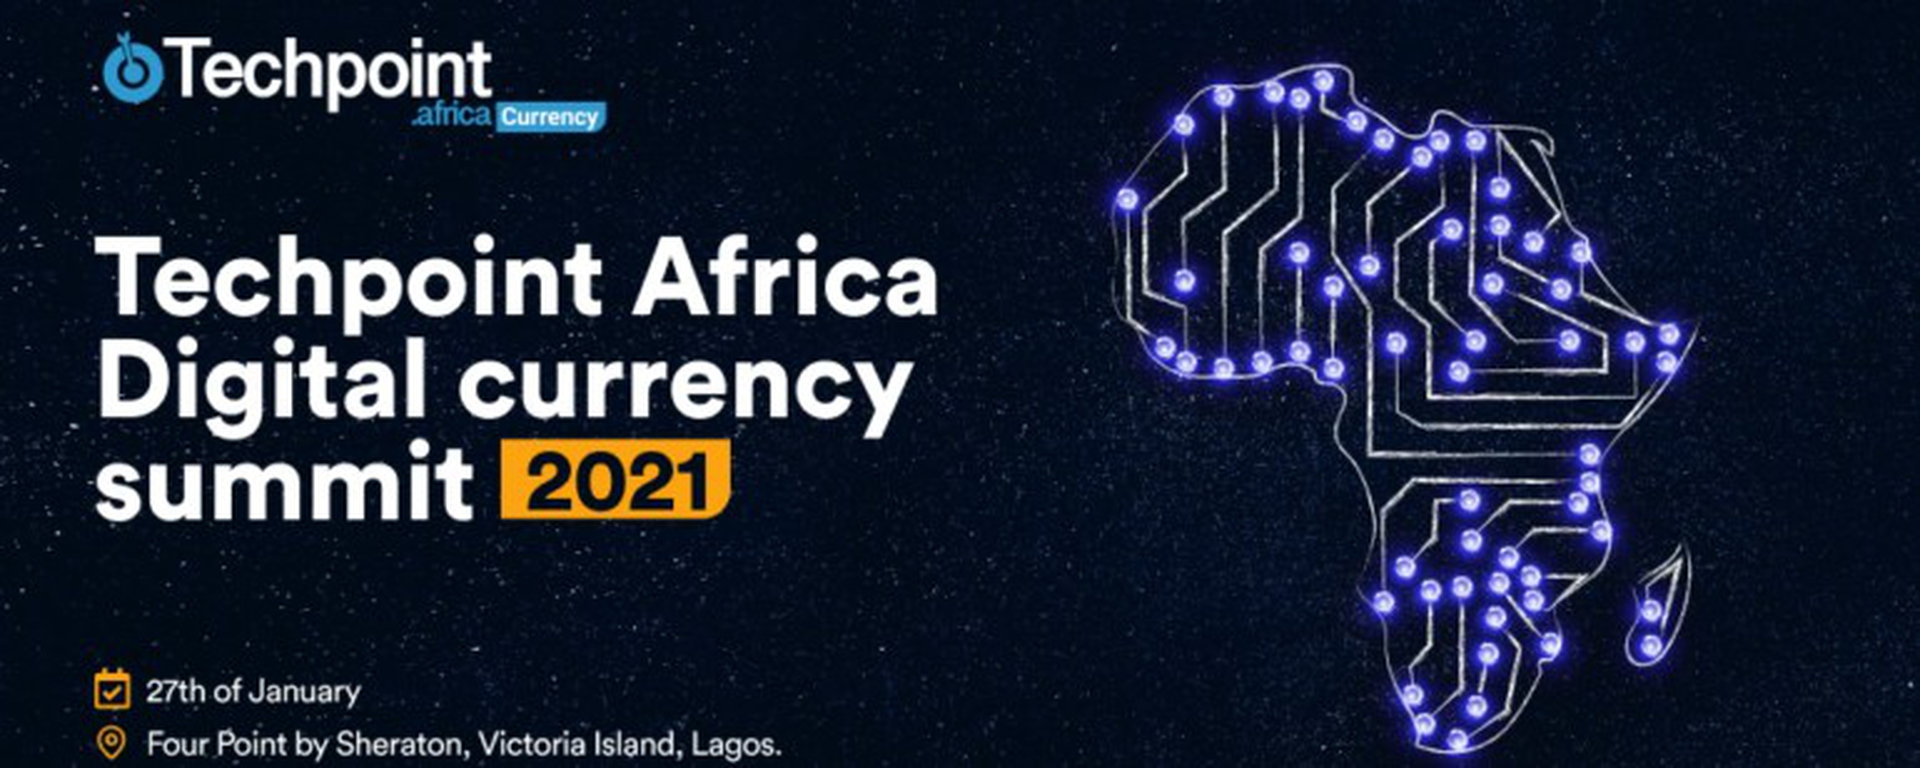 Techpoint Africa - Africa Digital Currency Summit Movemeback African event cover image